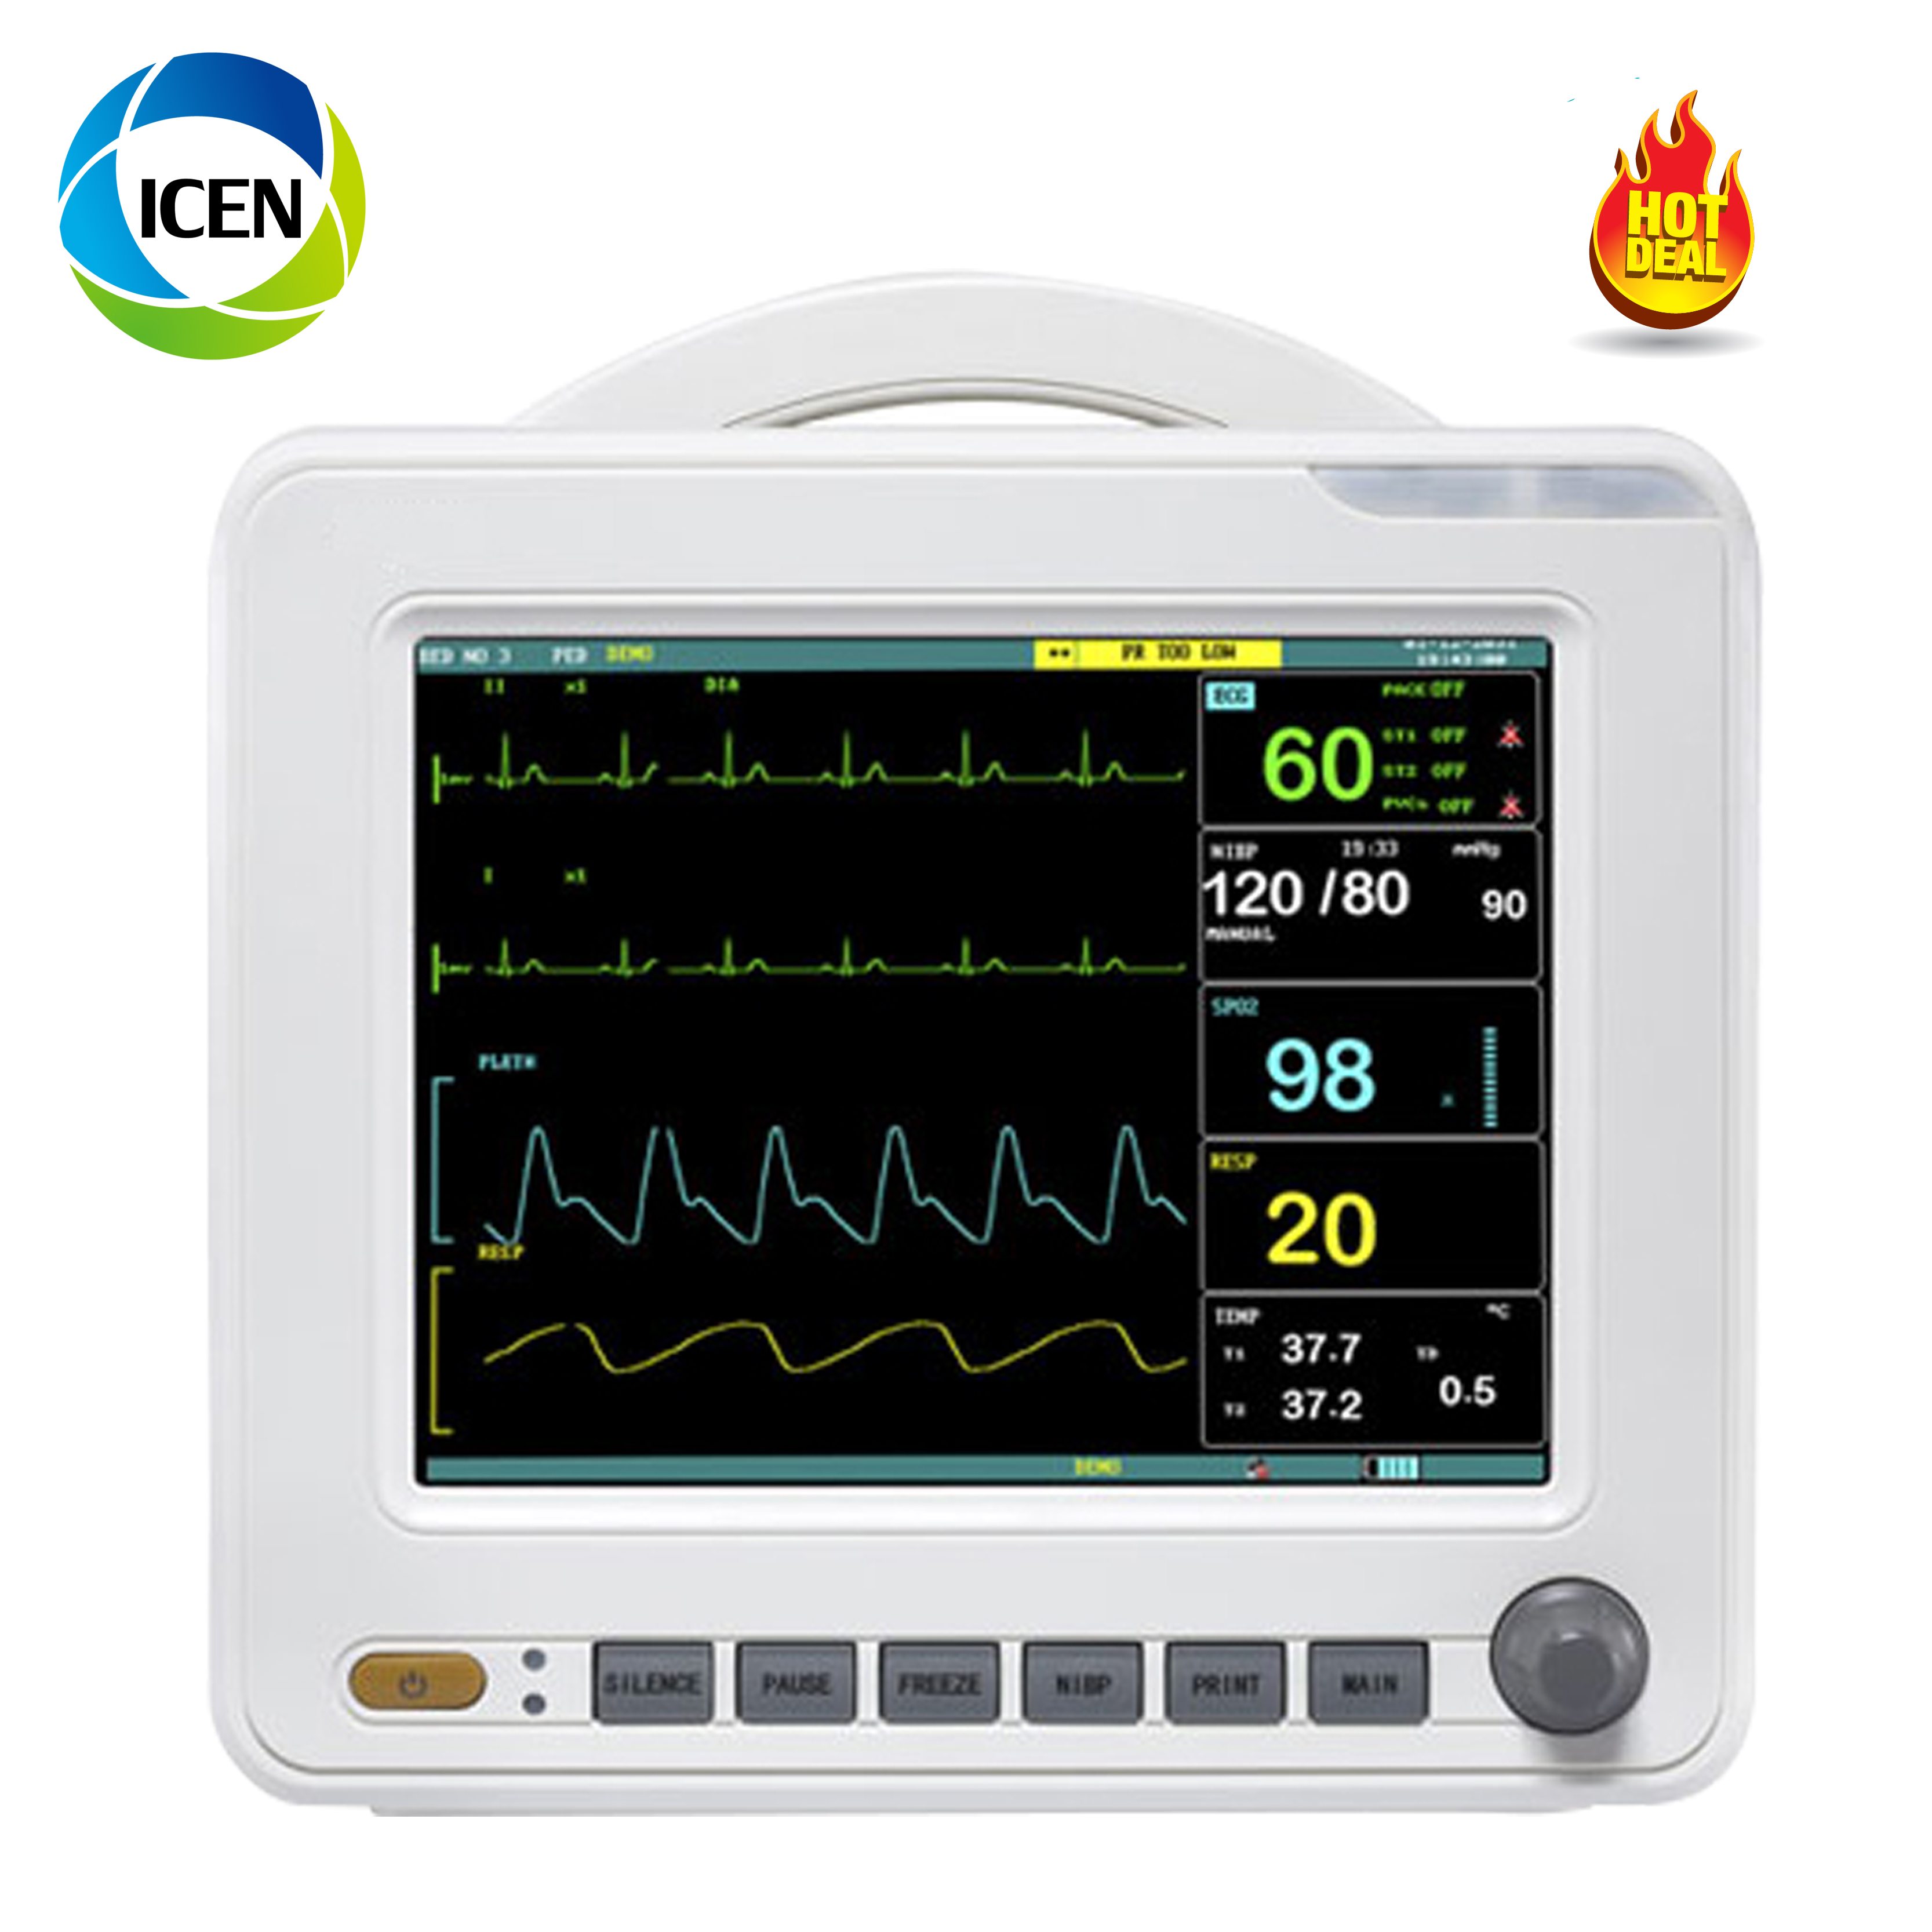 IN-80  Ambulance Patient Monitor Veterinary Multi-parameter Patient Monitor 12inch